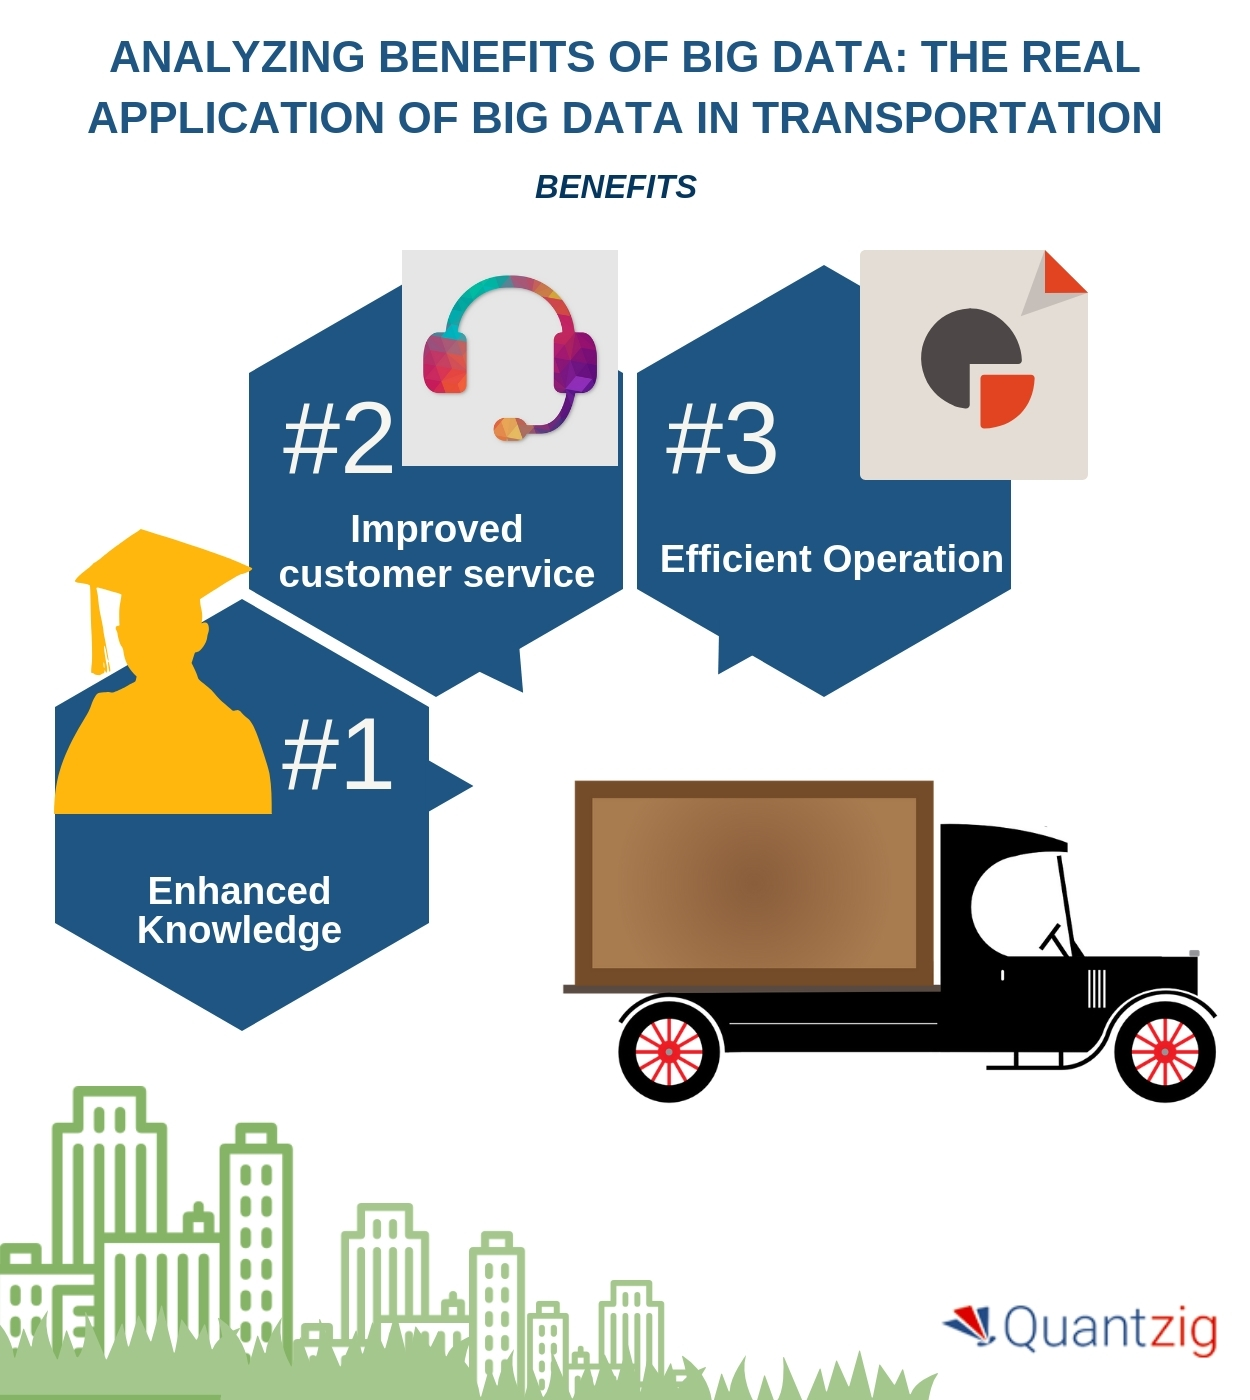 Top Benefits of Big Data in the Transportation Industry